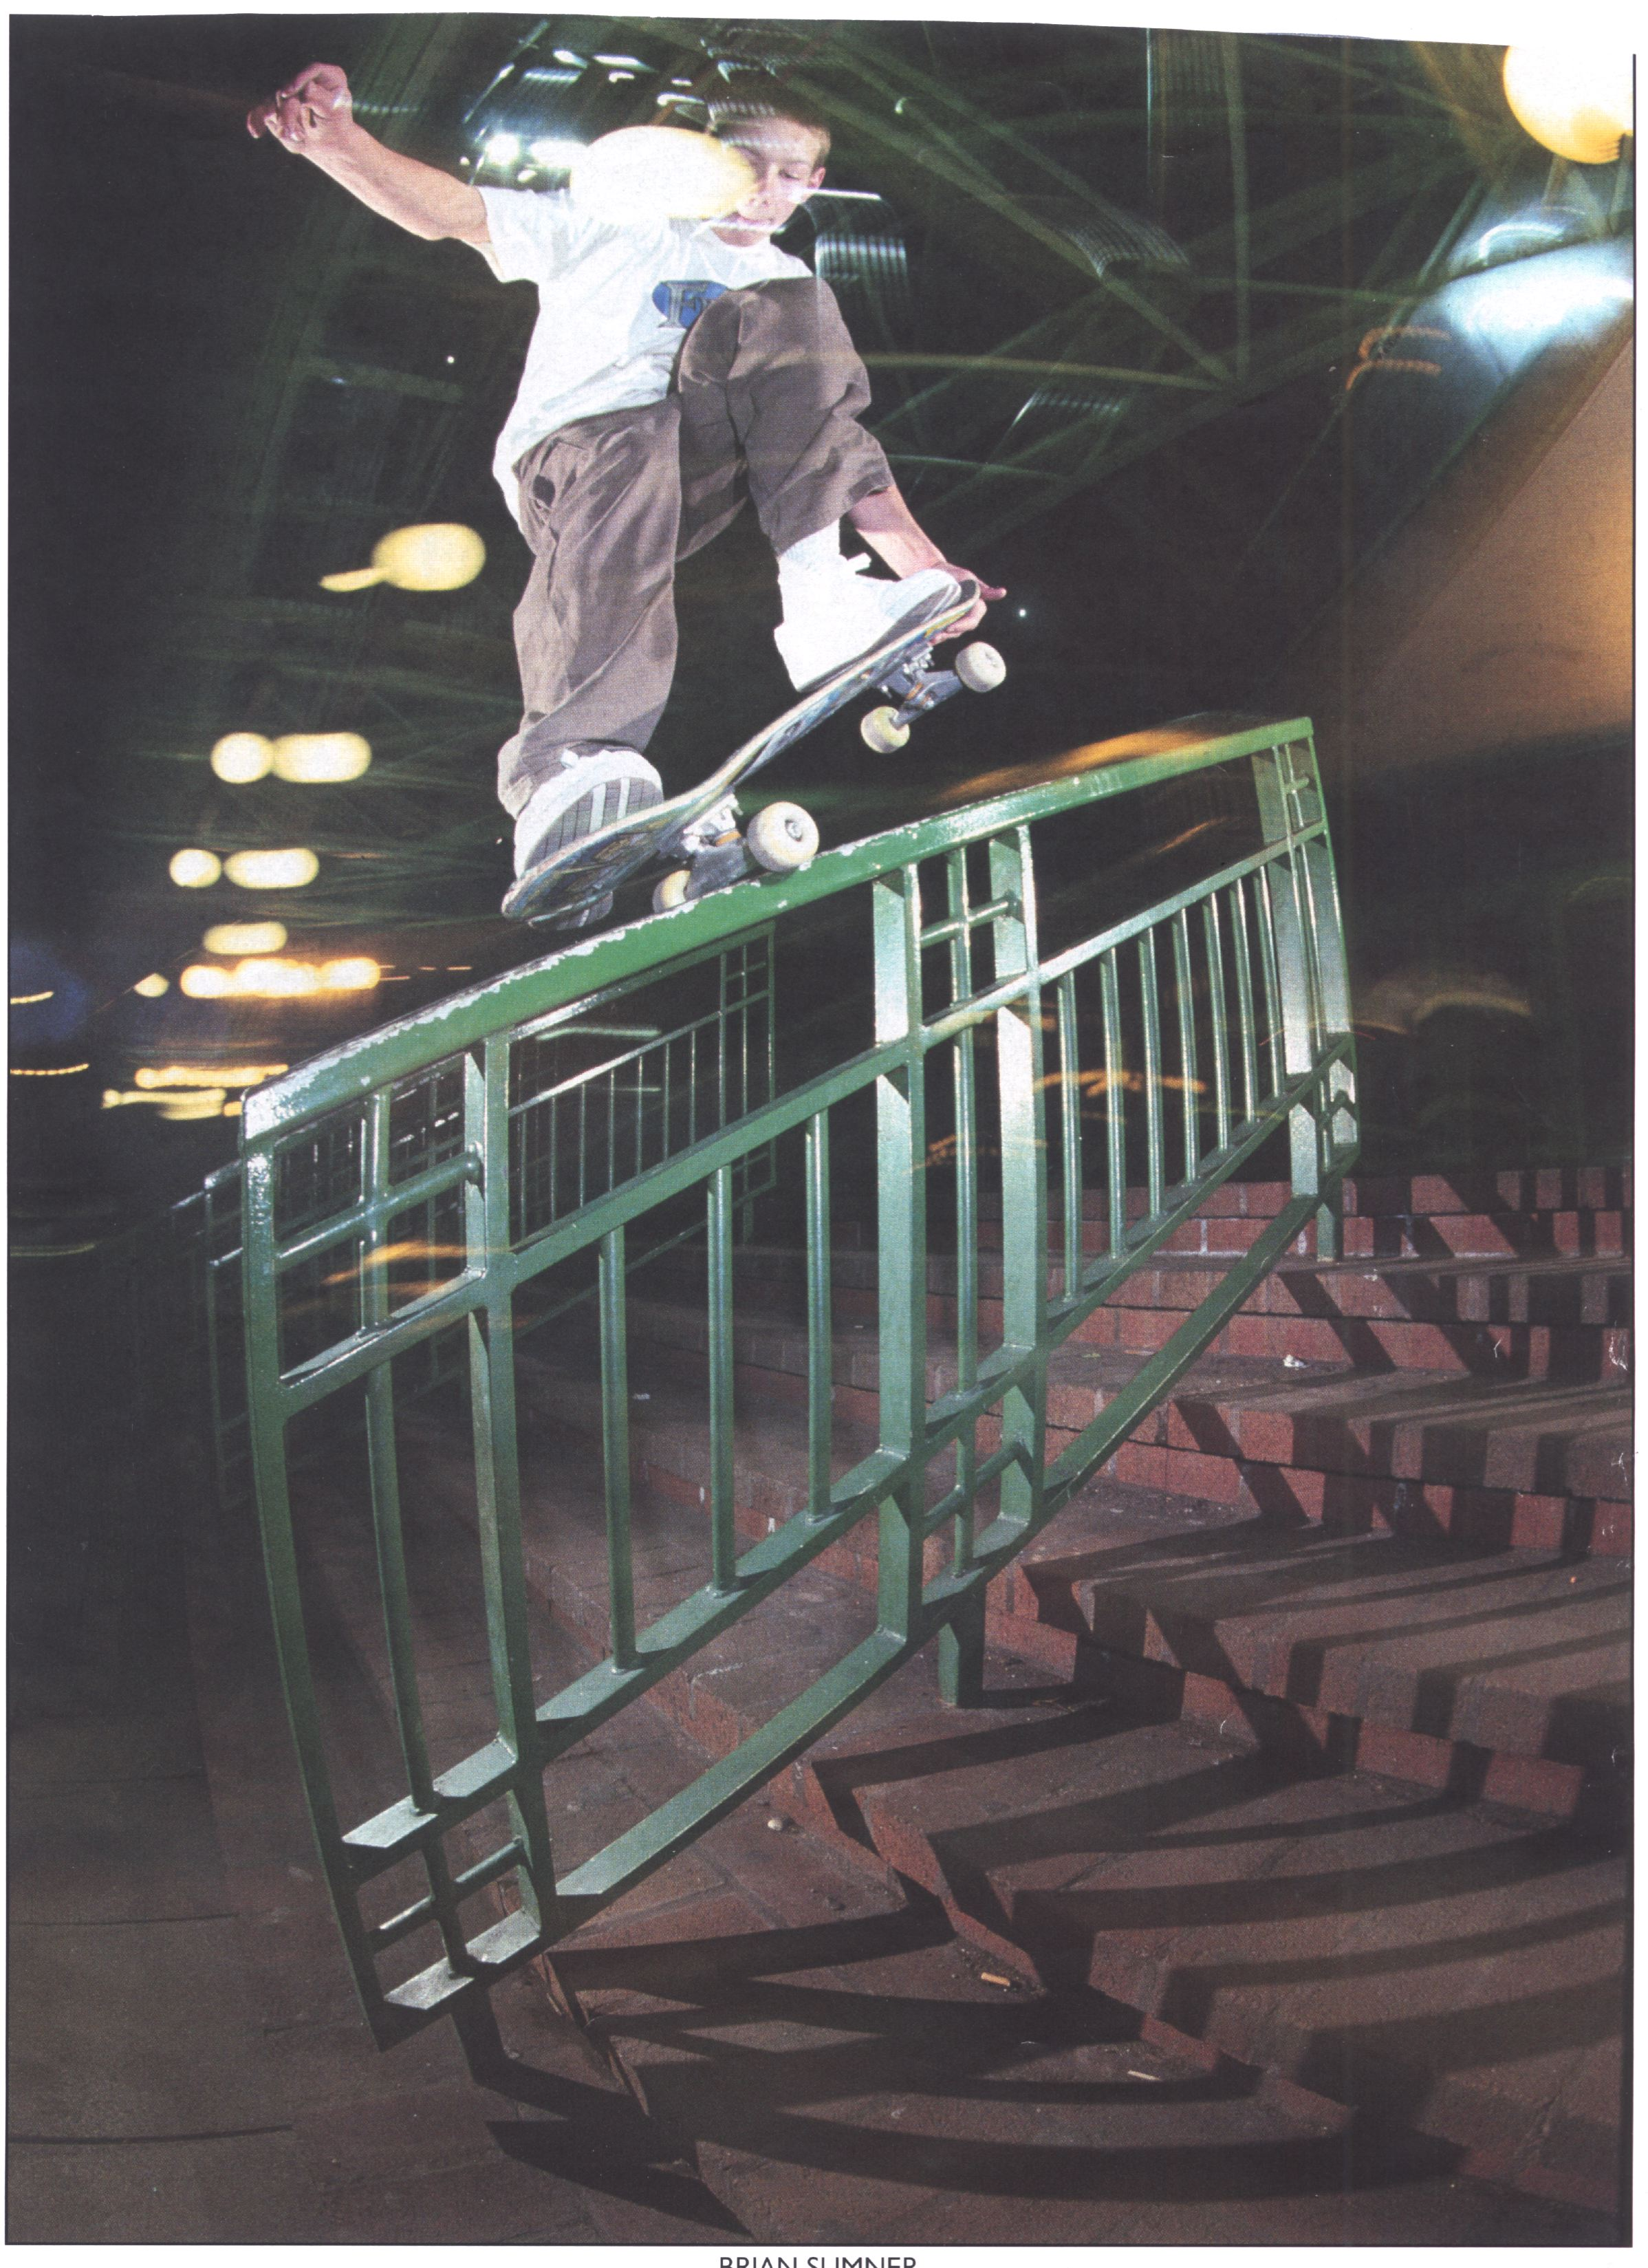 7 Nosegrind tail grab